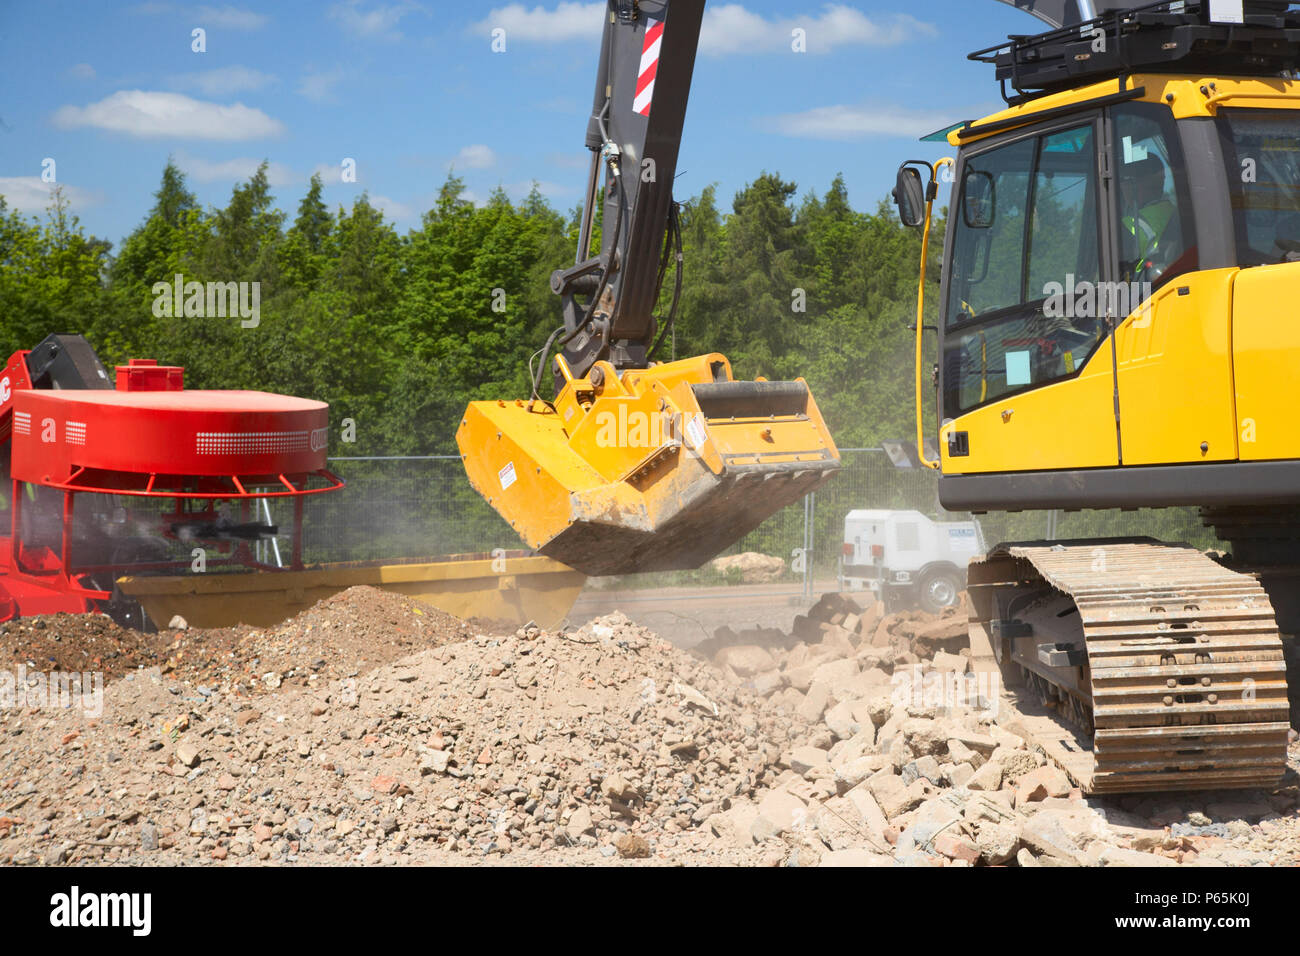 Aggregate Crusher Stock Photo: 210337026 - Alamy